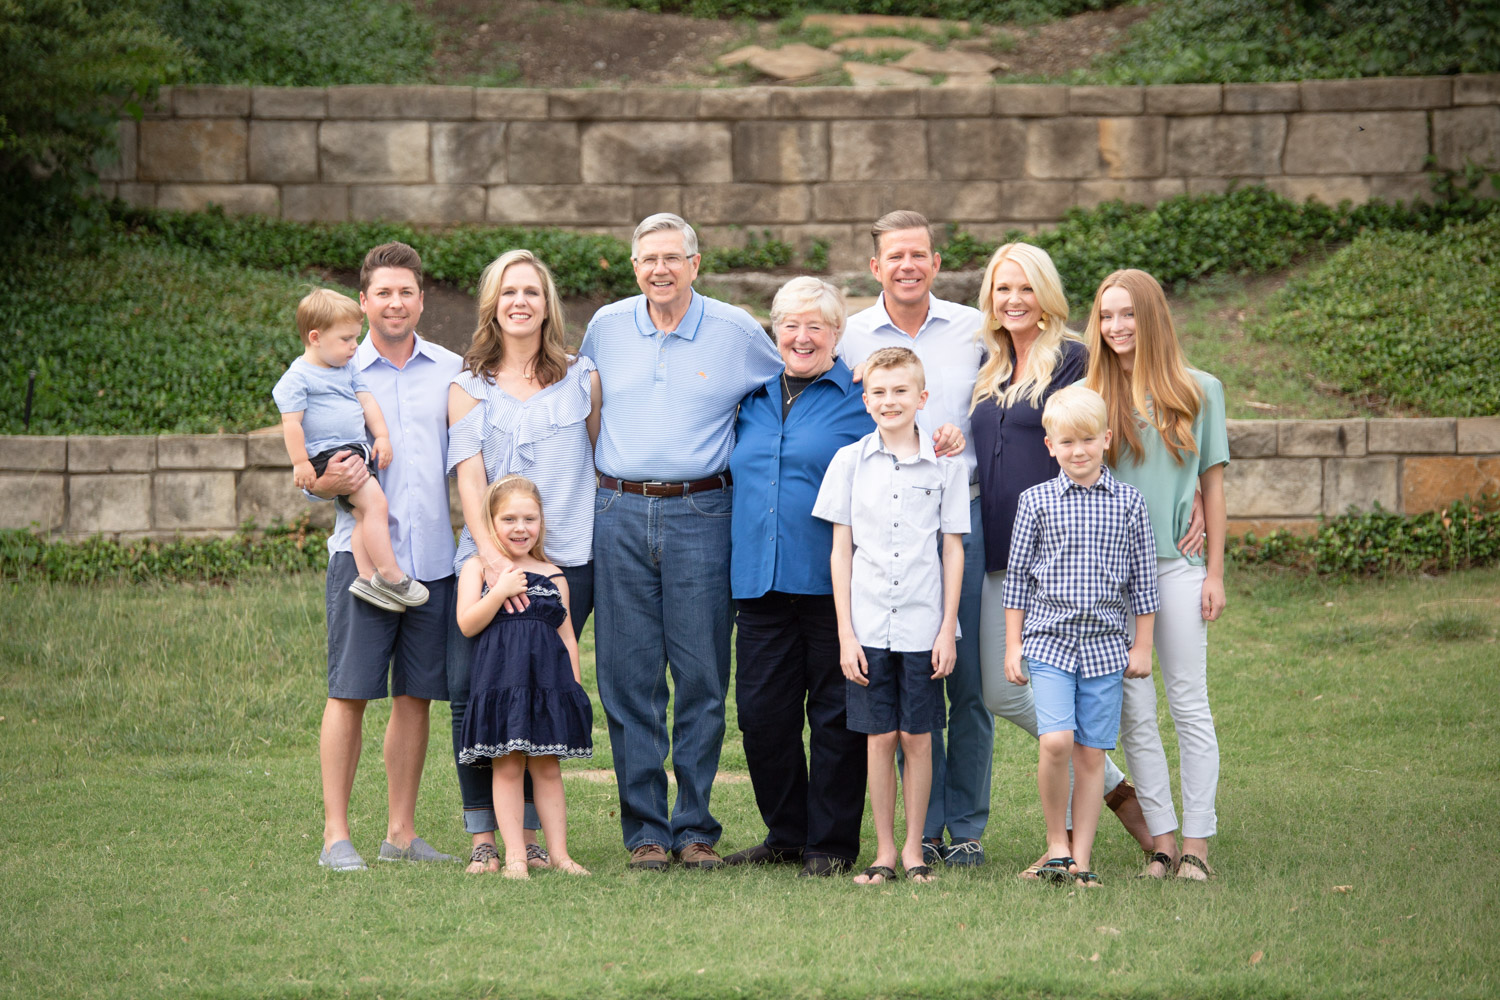 Large Group Photo Session family looking at camera and smiling by Shelly Niehaus Photography Prosper, TX.-8